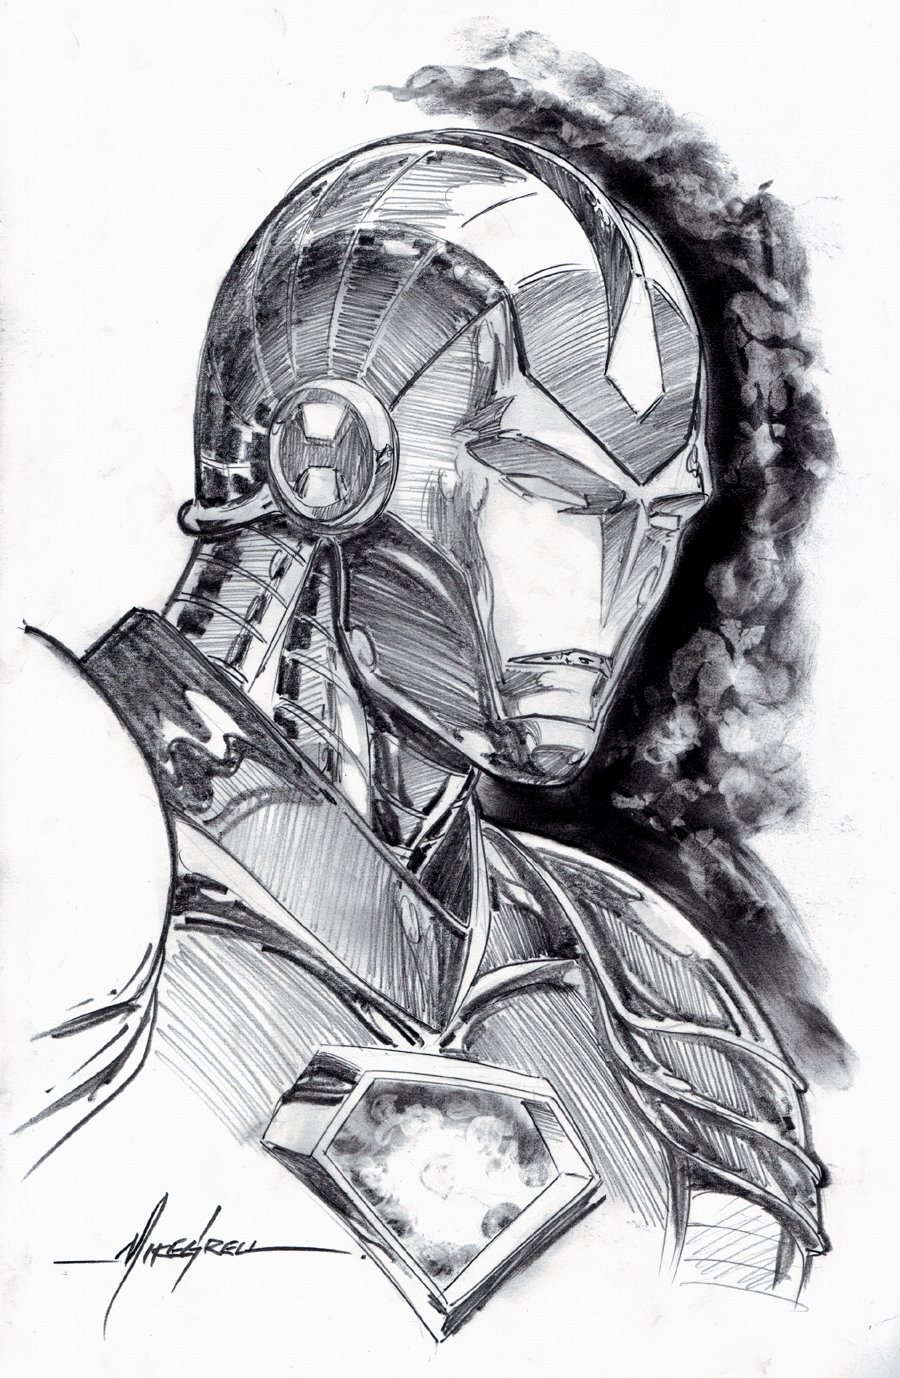 Iron Man Large Pinup (SOLD LIVE ON 'DUELING DEALERS OF COMIC ART' EPISODE #31 PODCAST ON 8-14-2021(RE-WATCH THIS FUNNY ART SELLING SHOW HERE)